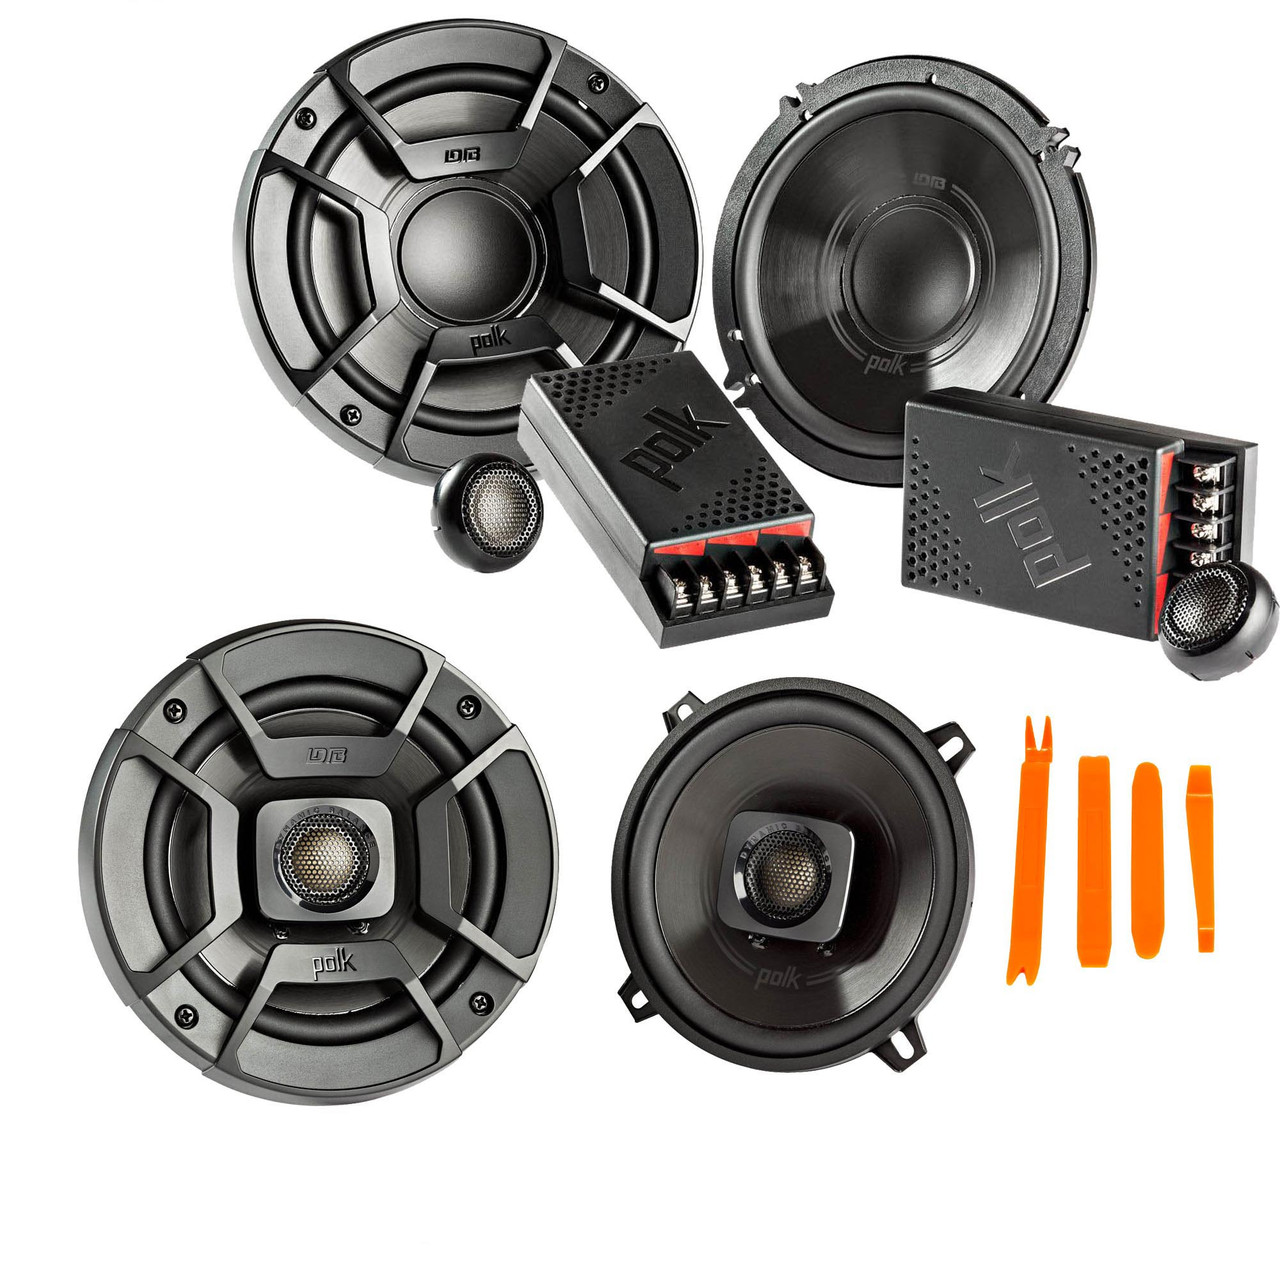 Bundle Includes 2 Pair A Pair of DB6502 6.5 Components and A Pair of DB692 6x9 Coax Speakers Polk Audio